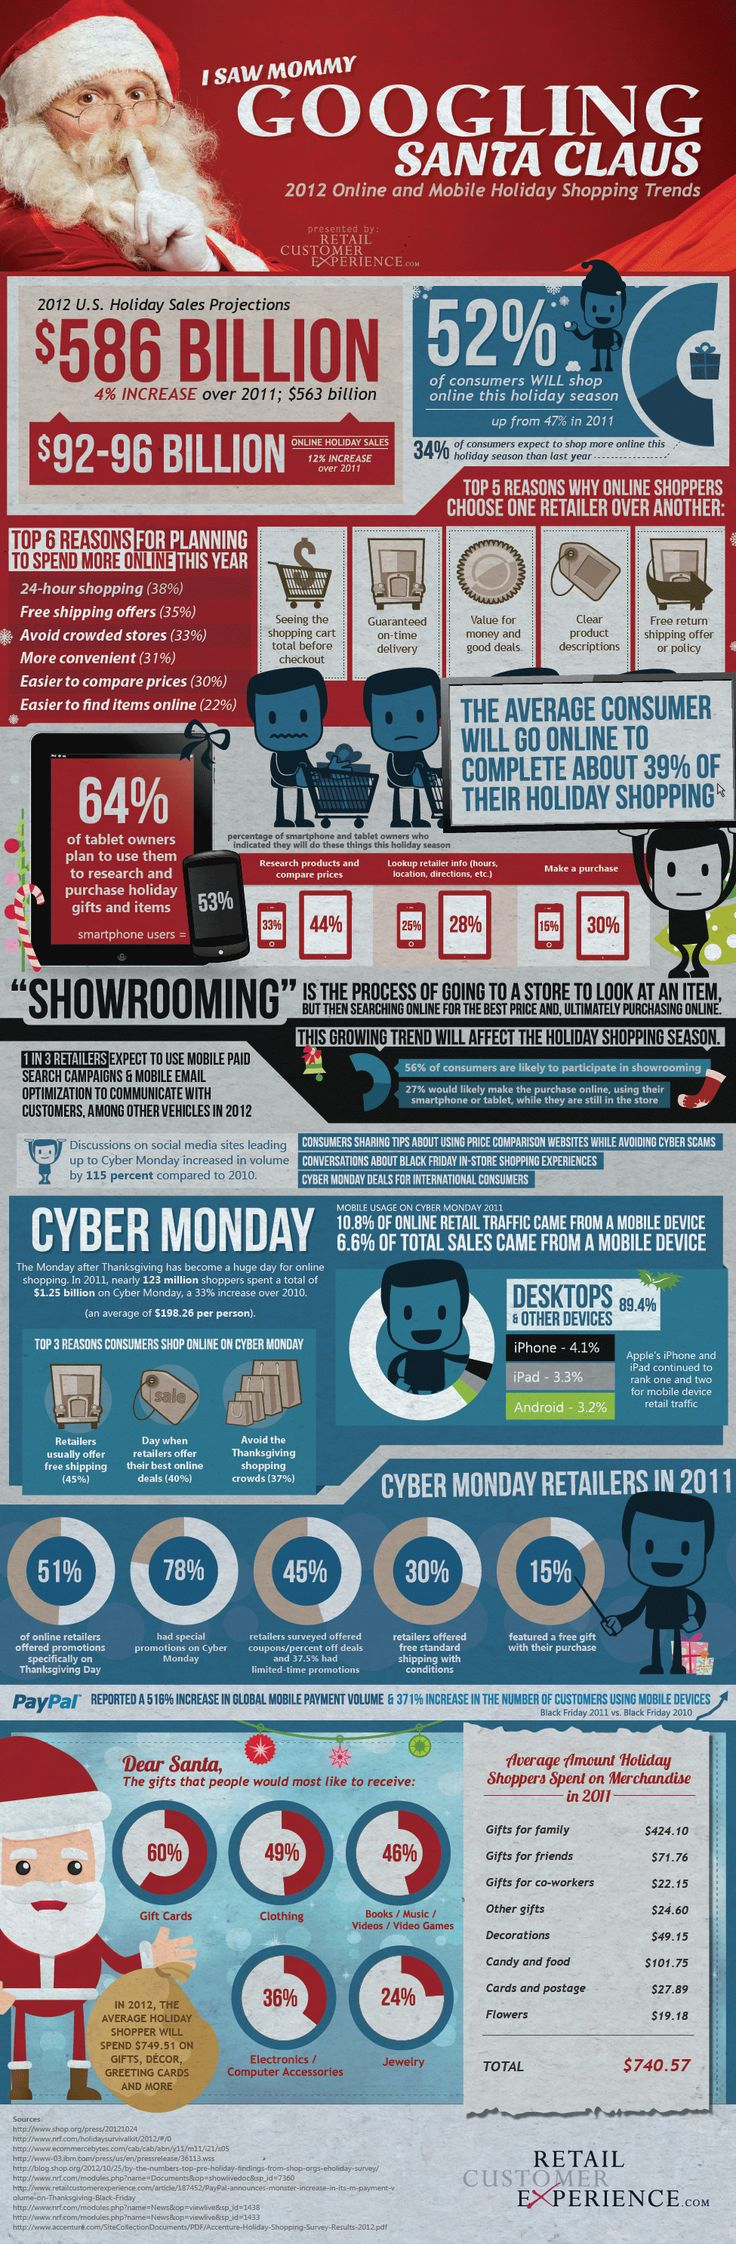 2012 Online & Mobile Holiday Shopping Trends